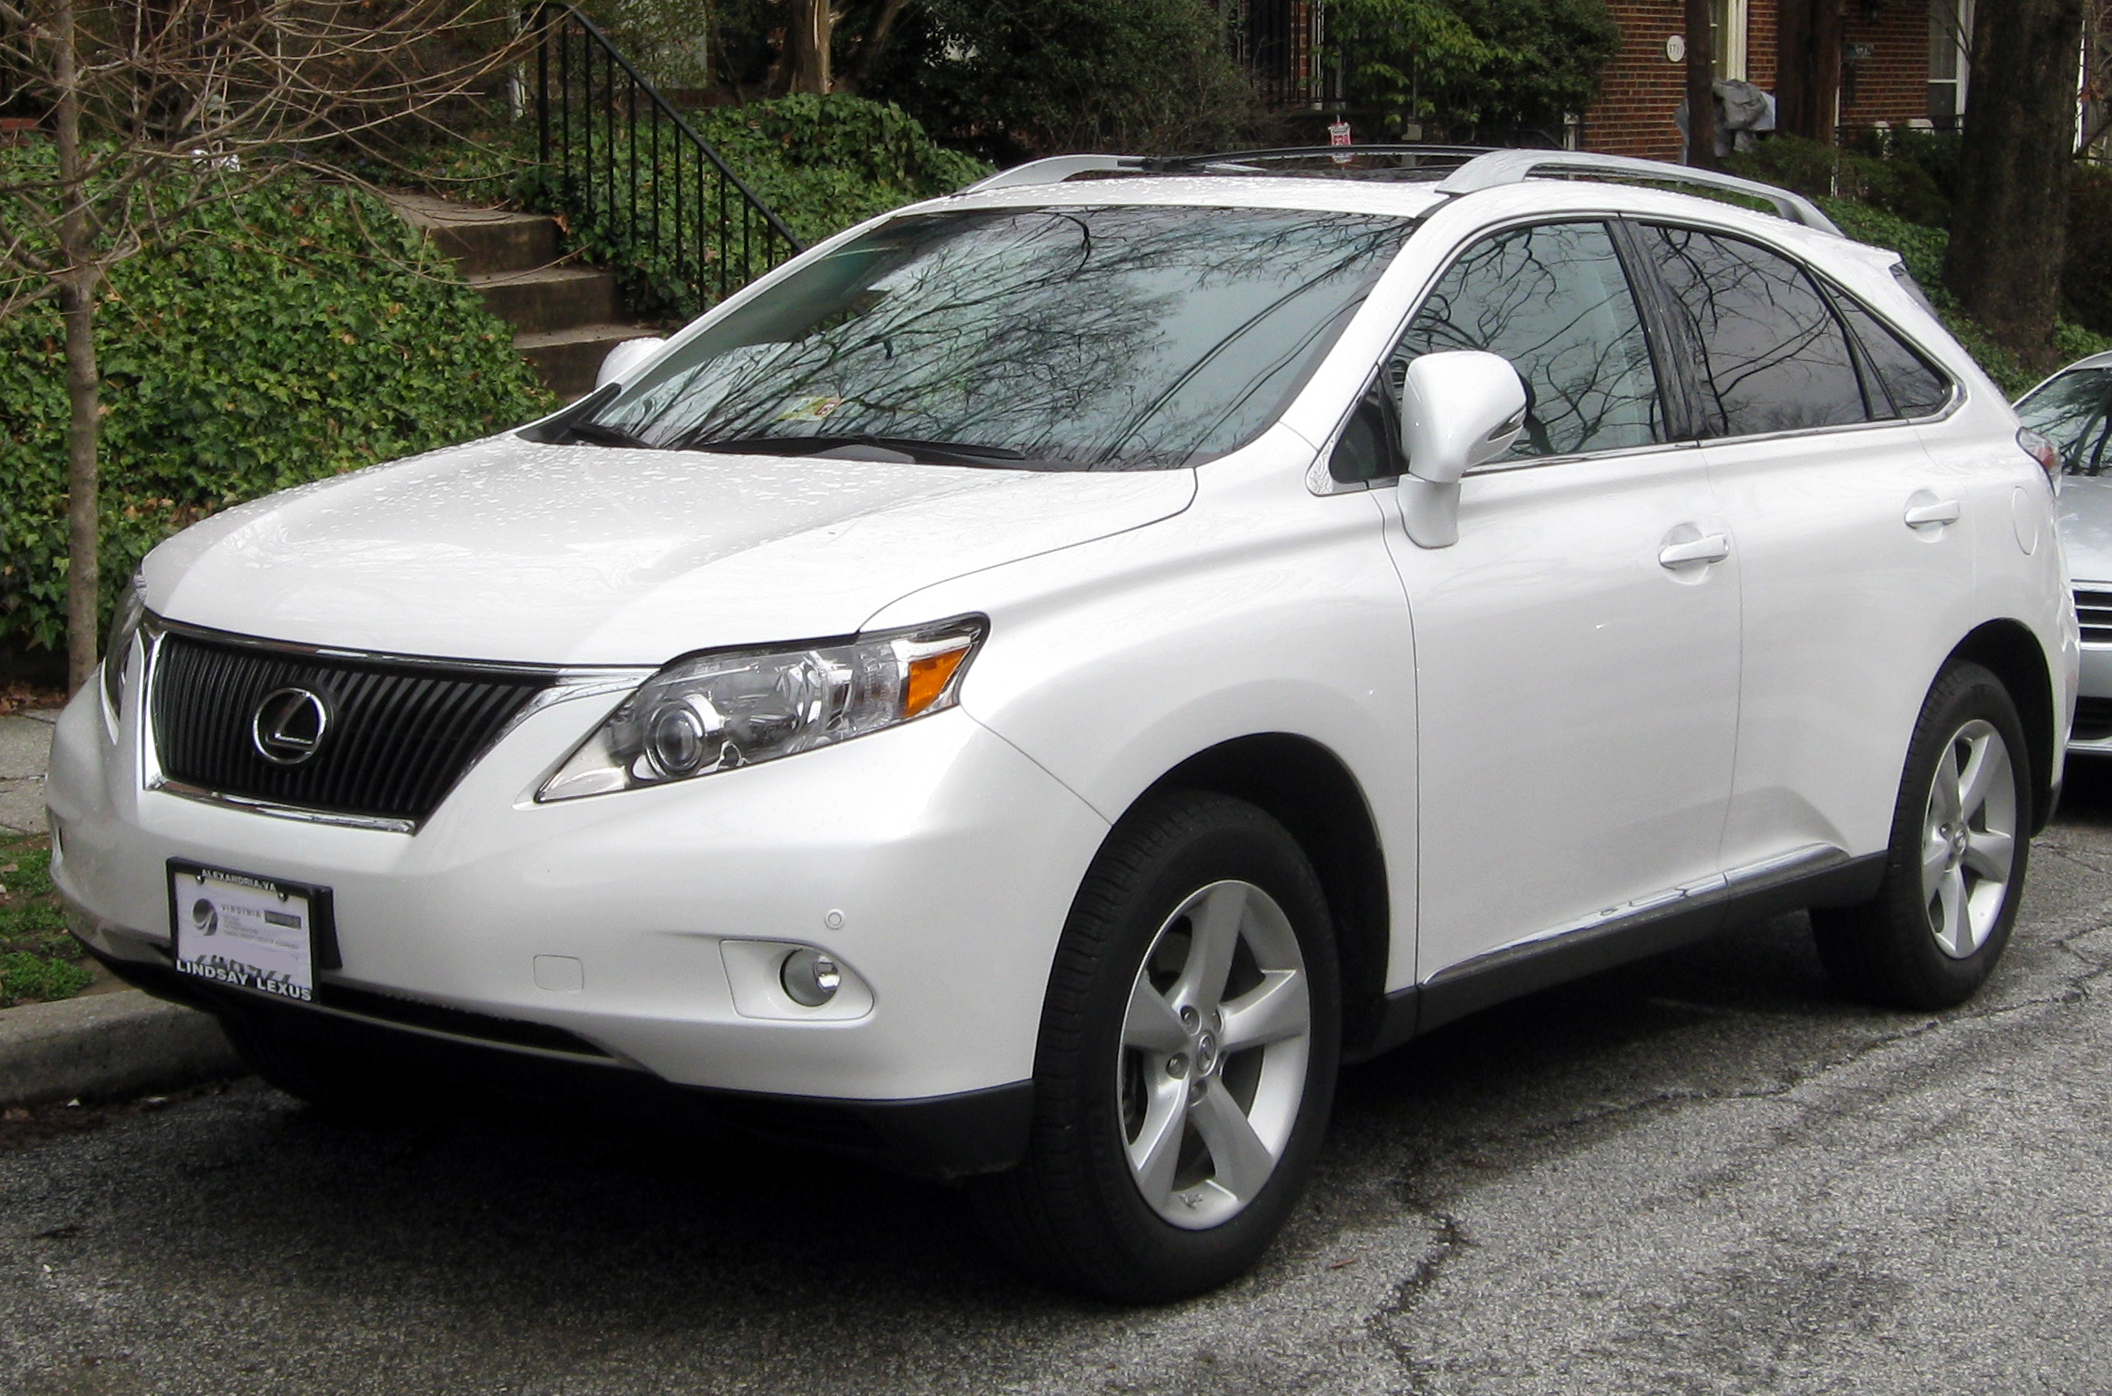 prices msrp new and rx price invoice of features list reviews suv specs lexus stock